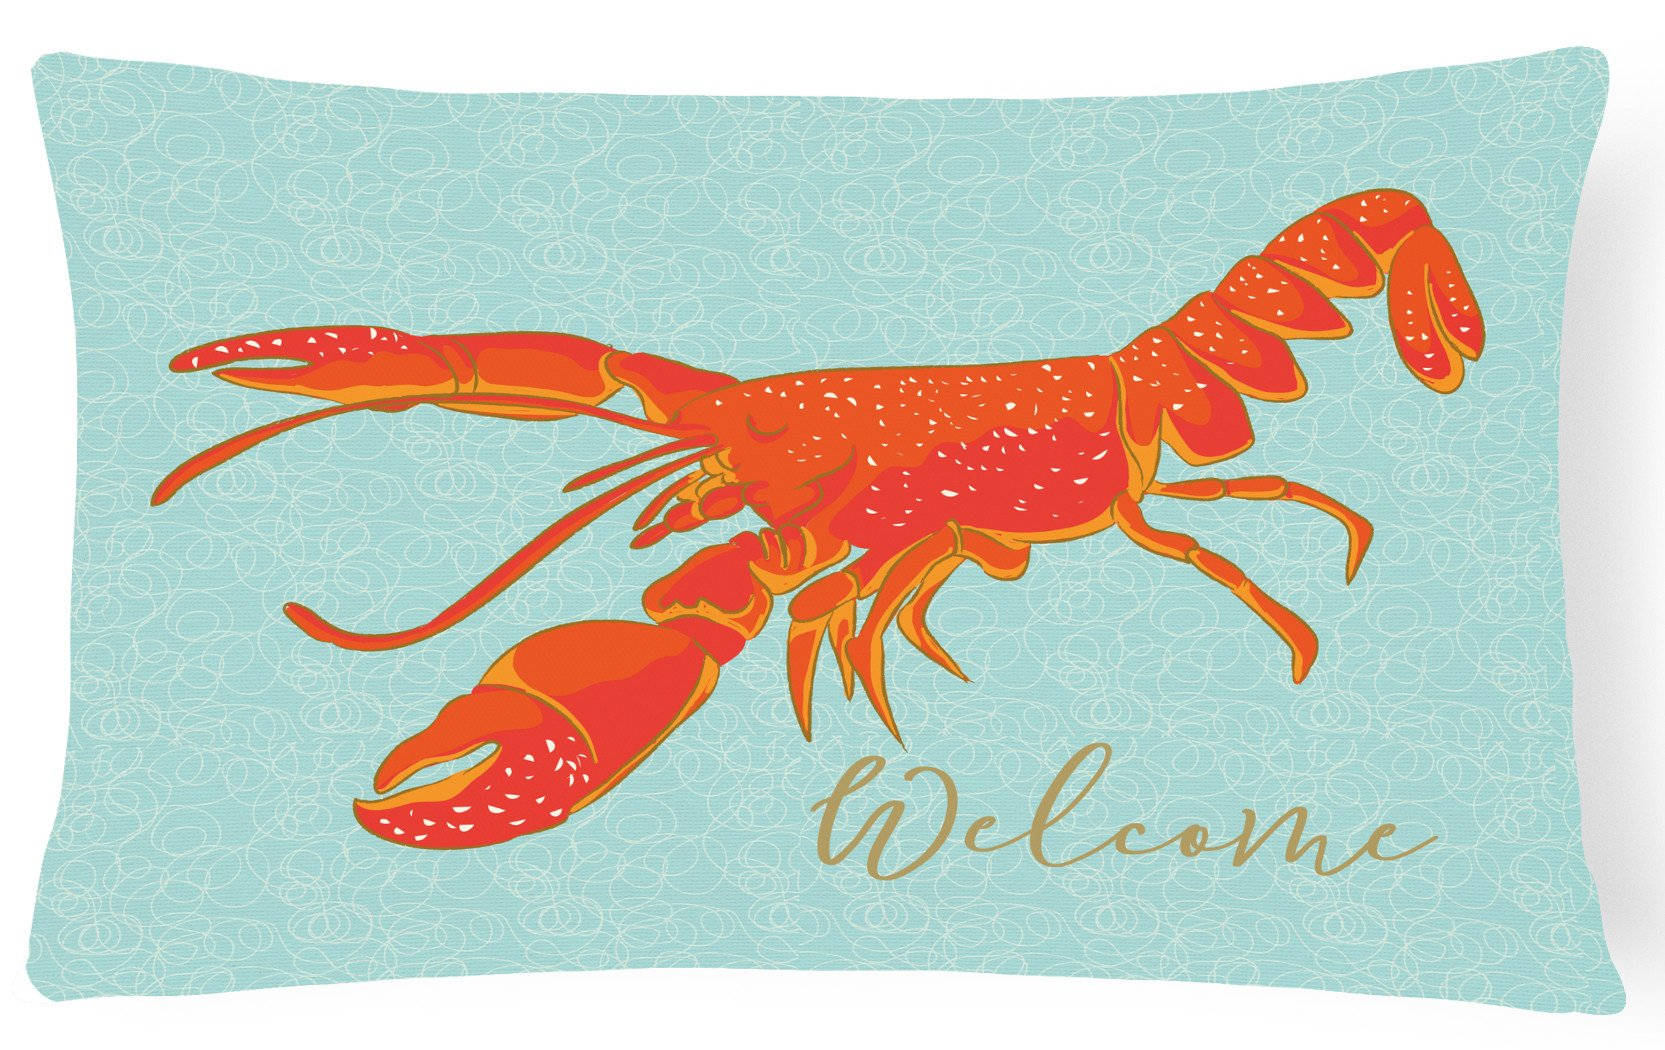 Lobster Welcome Canvas Fabric Decorative Pillow BB8534PW1216 by Caroline's Treasures